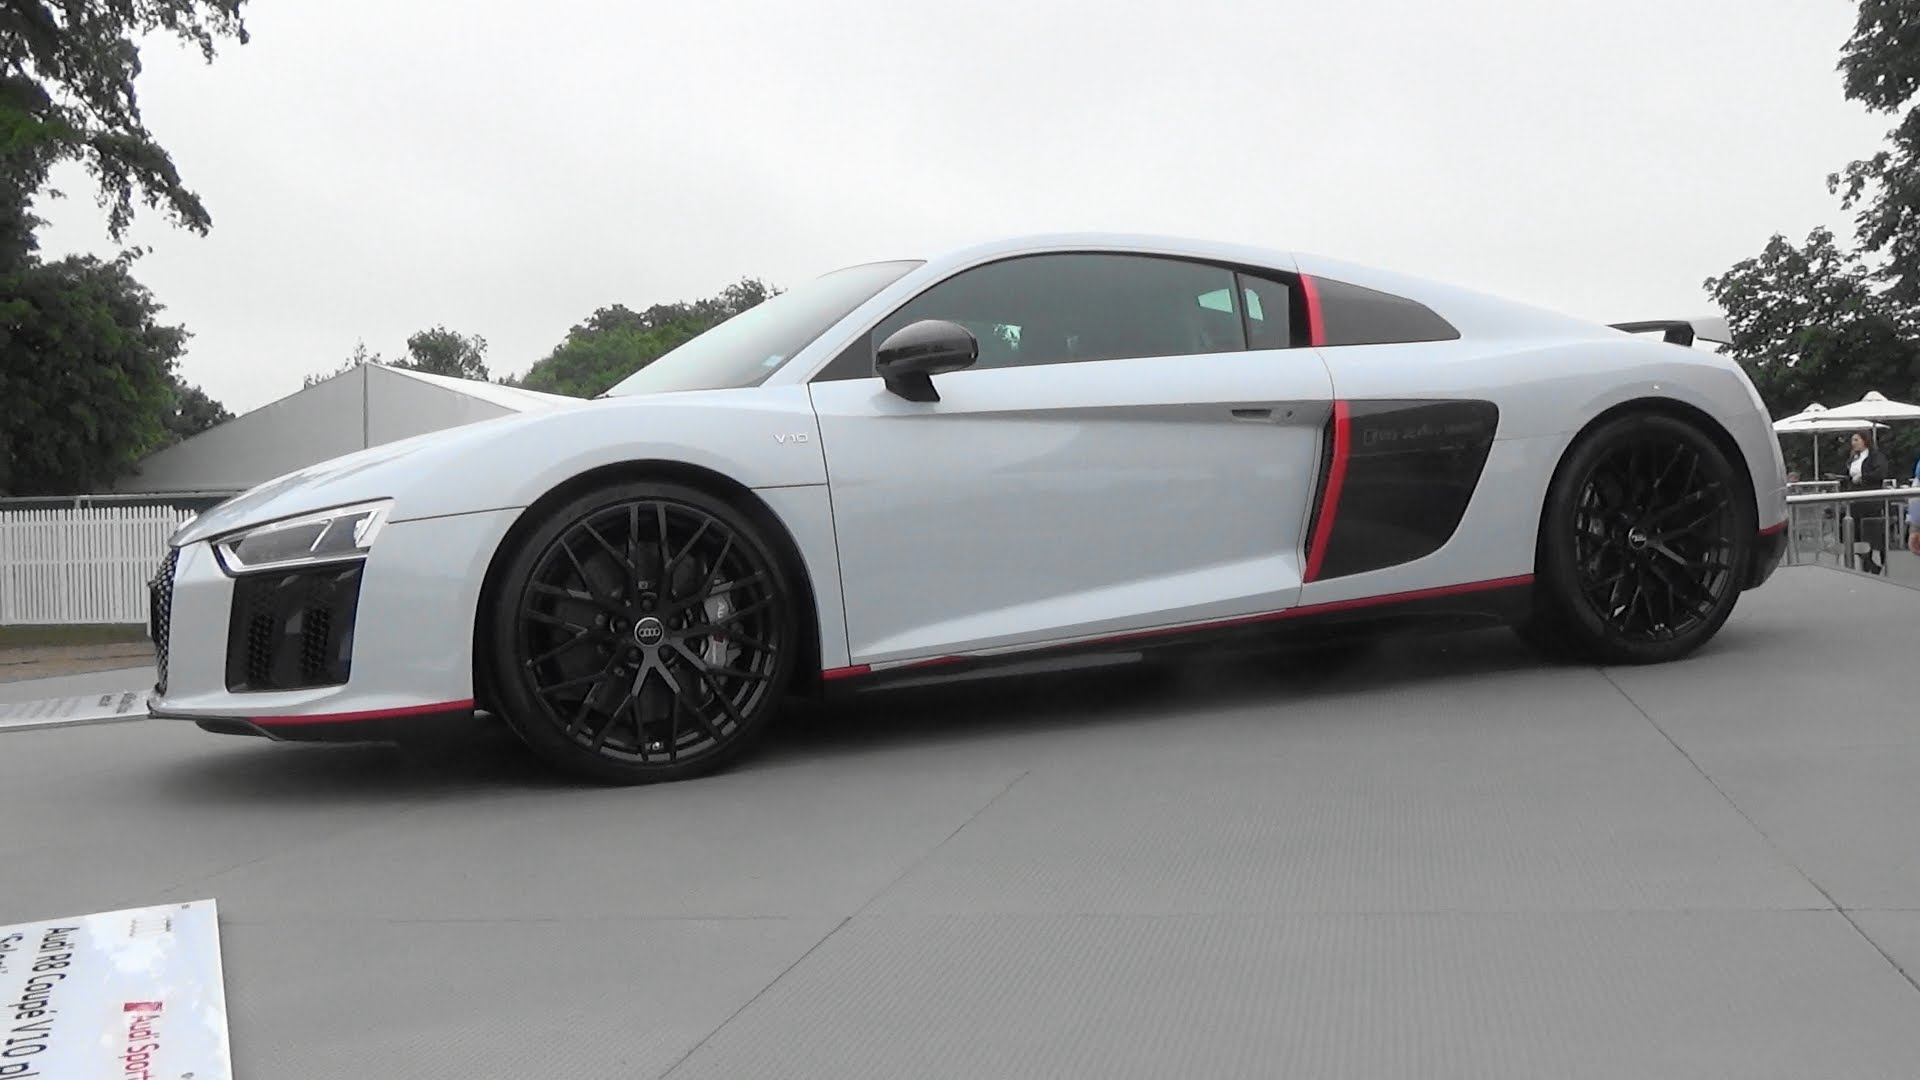 Audi R8 V10 Plus Selection 24h Is A Supercar With A Long Name At